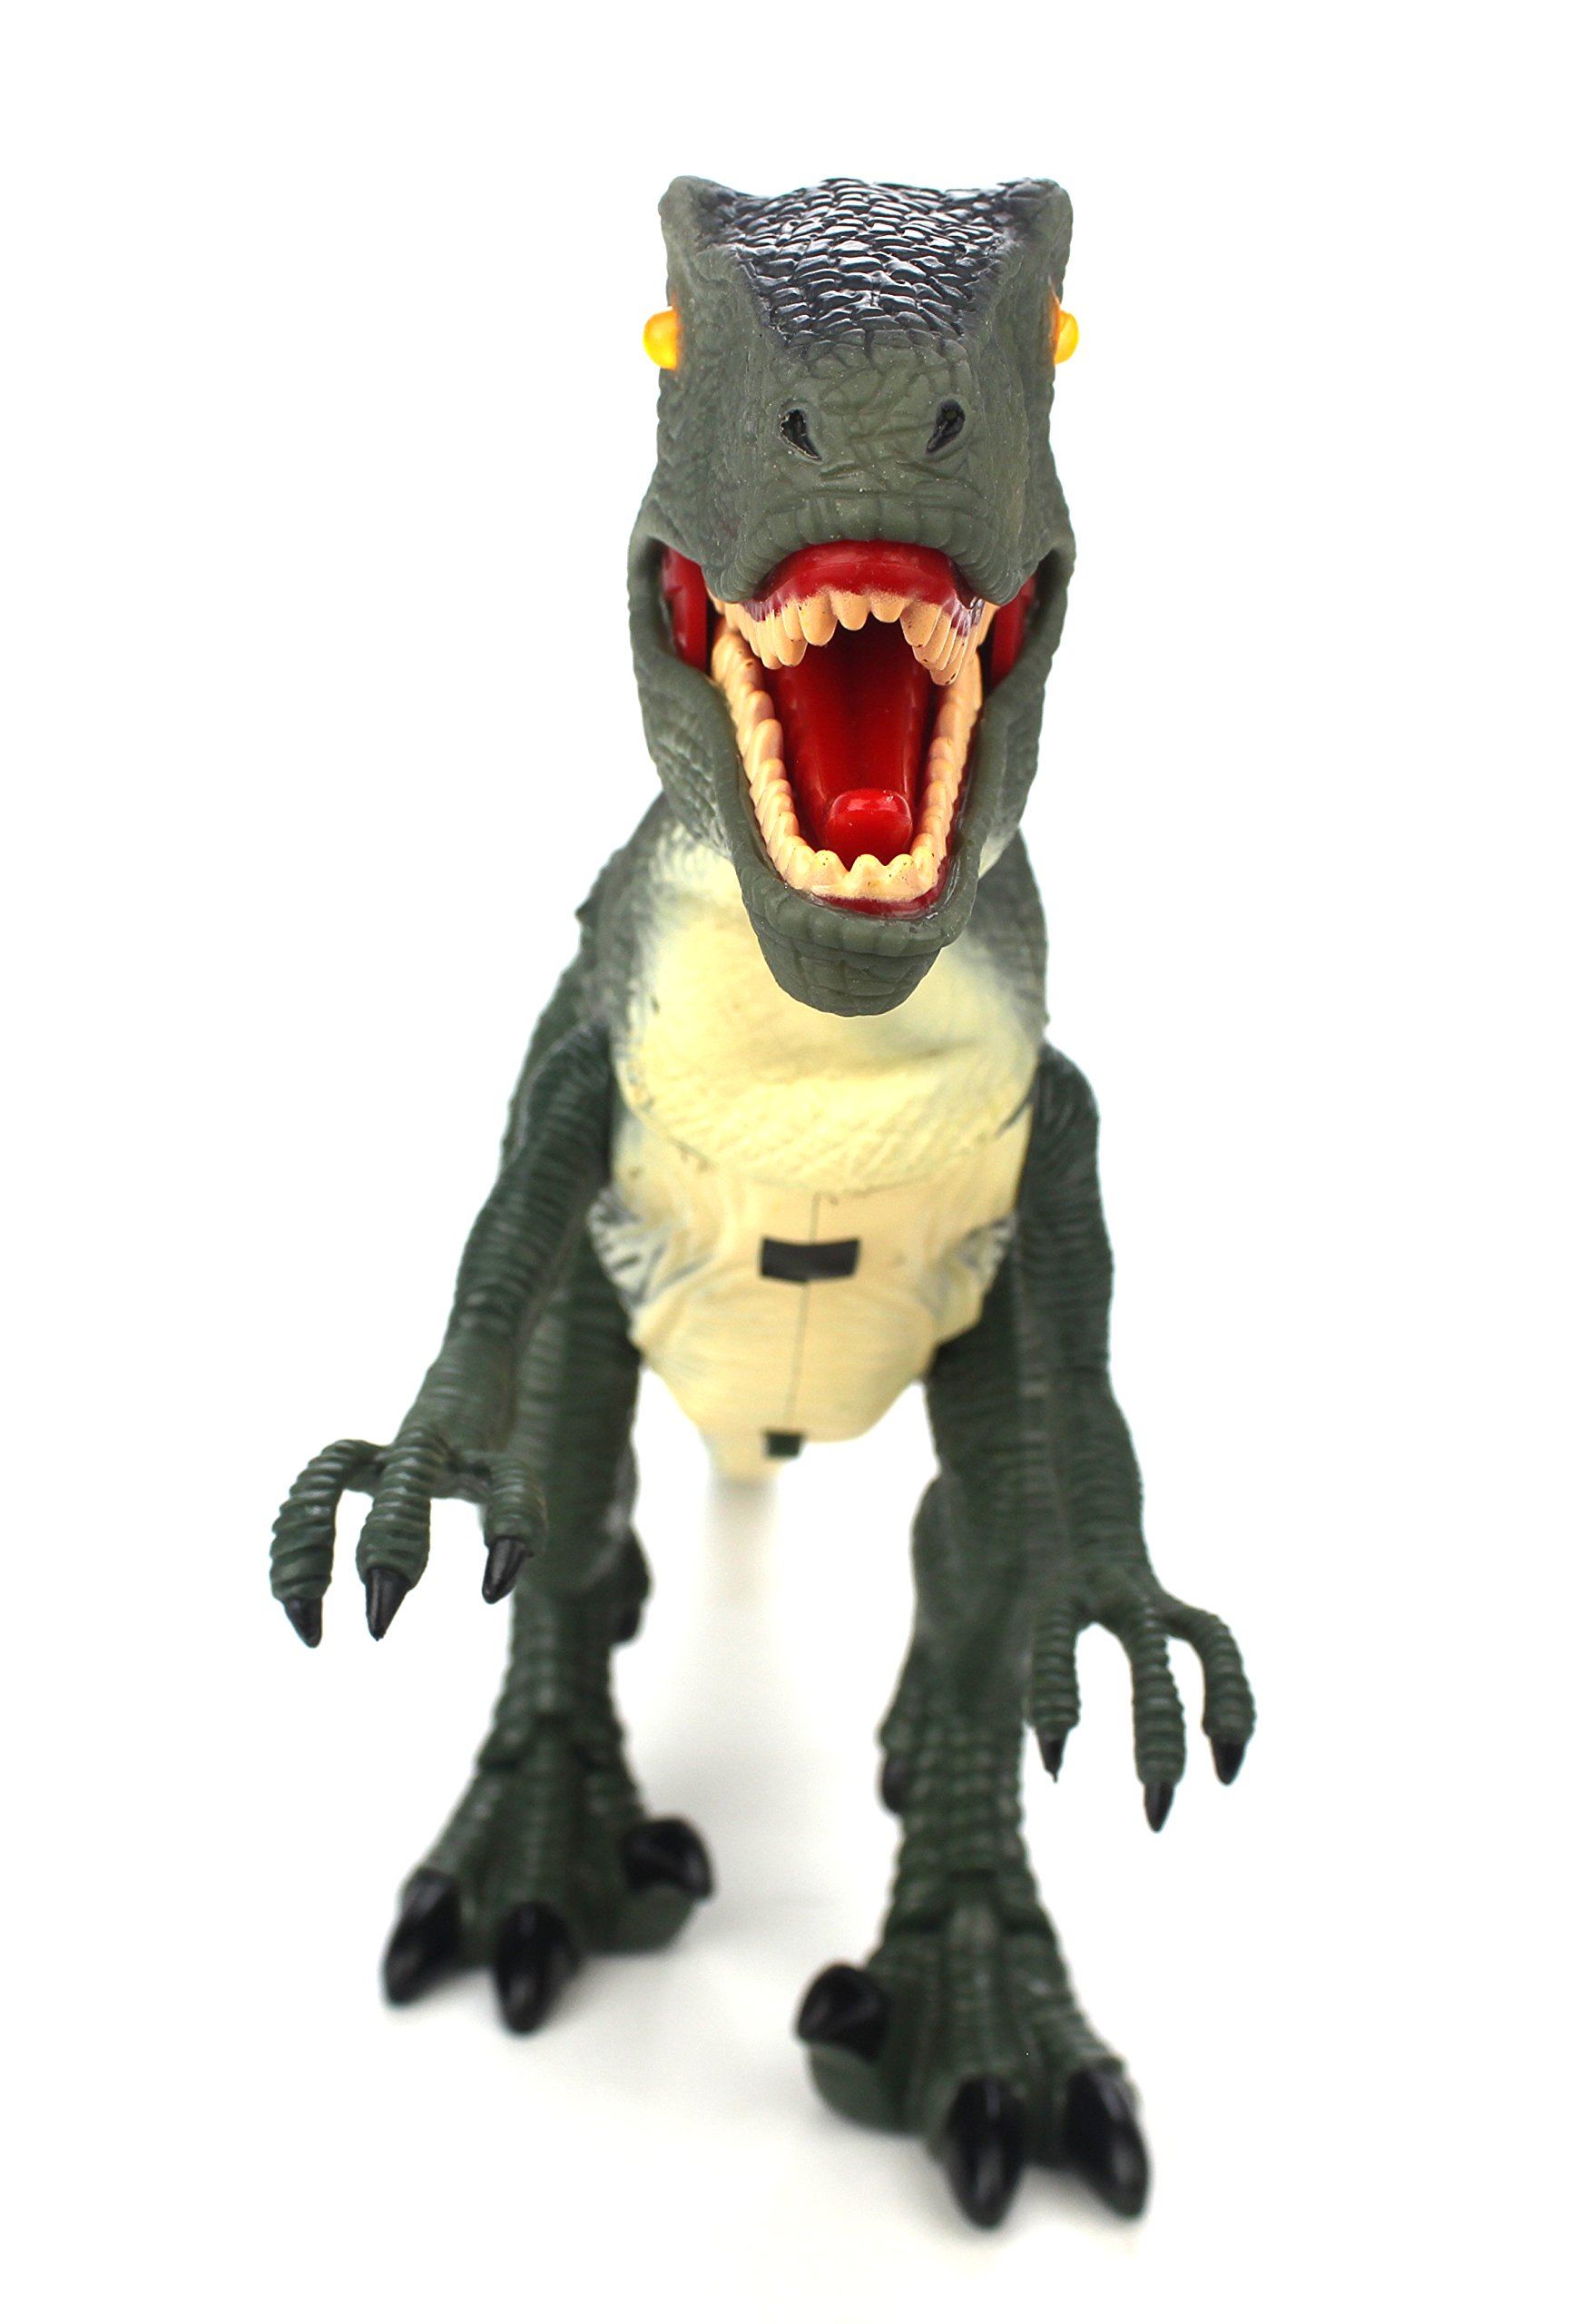 Dinosaur Planet Raptor Remote Controlled RC Battery Operated Toy Velociraptor Figure w/Shaking Head, Walking Movement, Light Up Eyes & Sounds by Velocity Toys (Image #5)